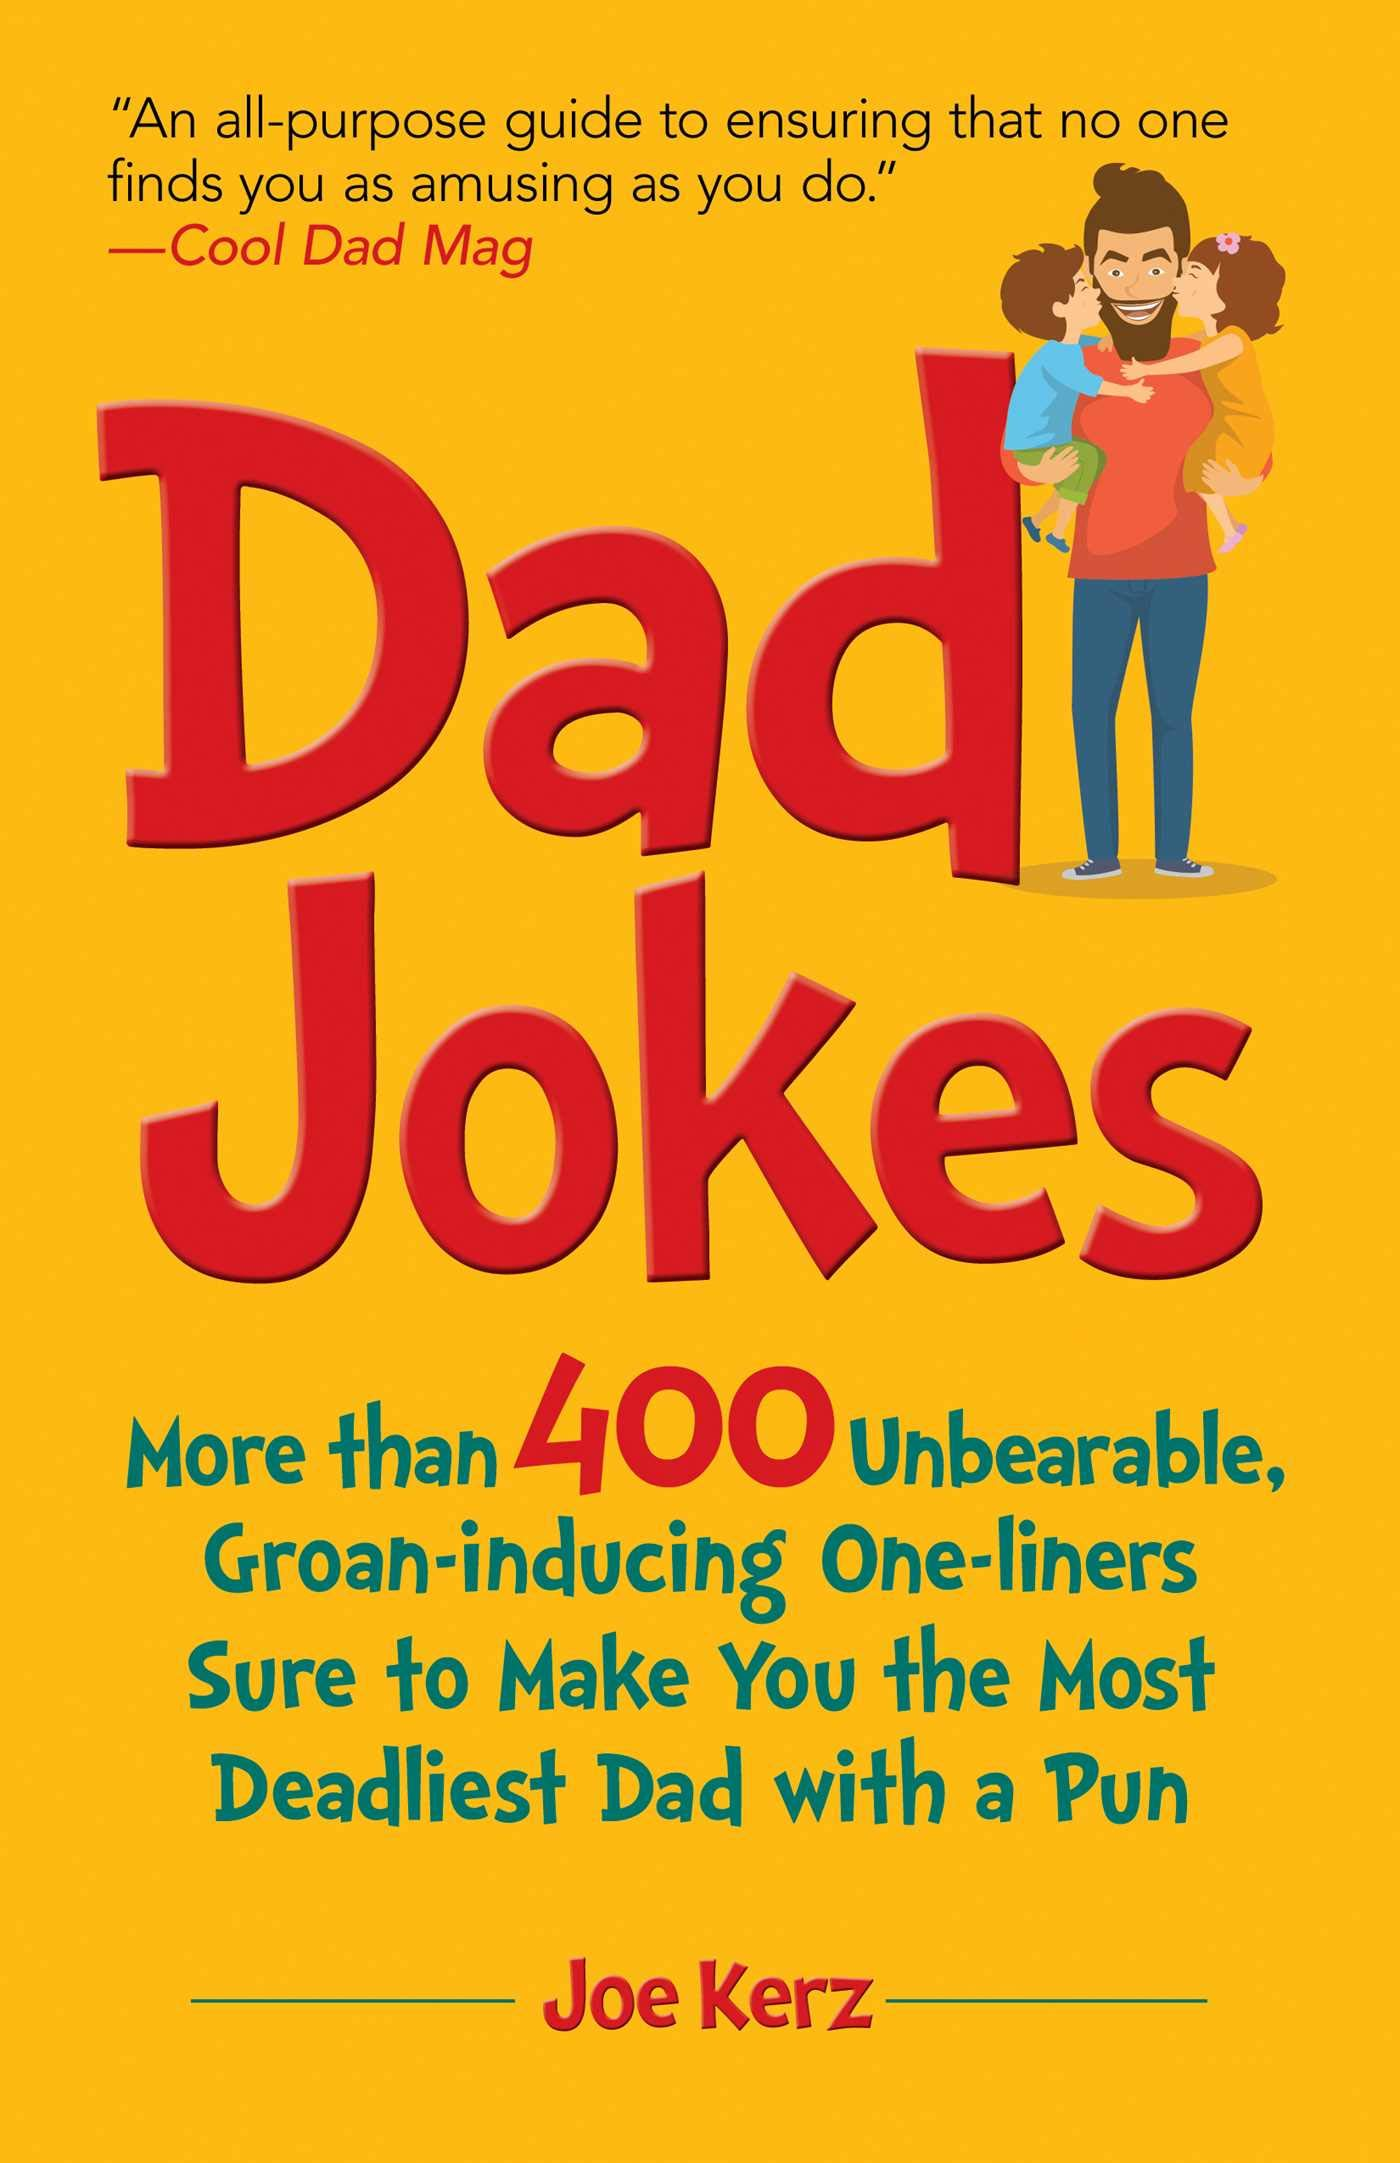 Image of: Opportunity Dad Jokes More Than 400 Unbearable Groaninducing Oneliners Sure To Make You The Deadliest Dad With Pun Hardcover June 5 2018 Amazoncom Dad Jokes More Than 400 Unbearable Groaninducing Oneliners Sure